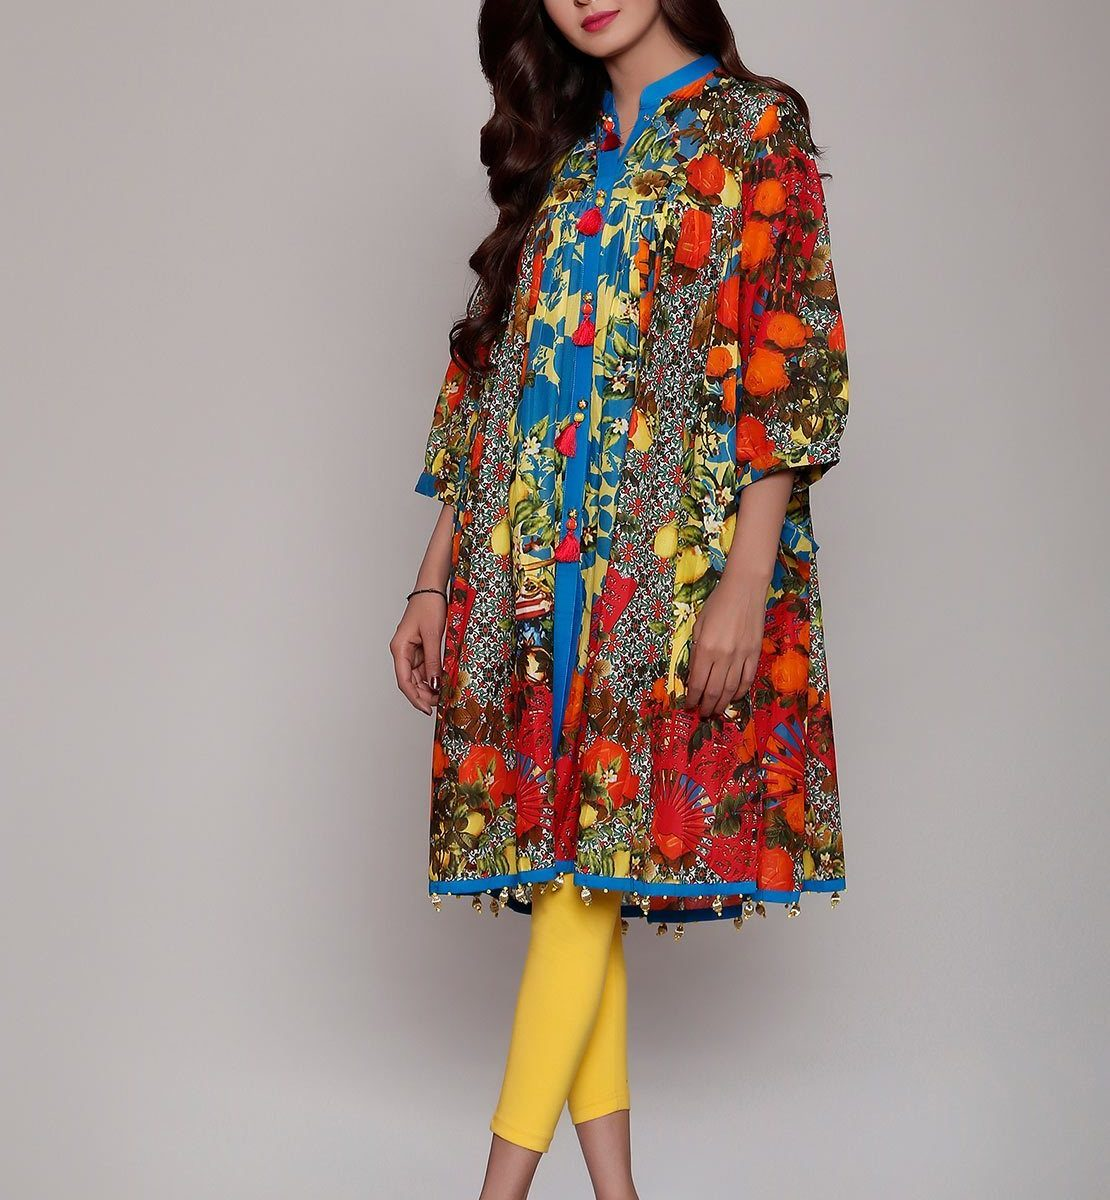 Beautiful Lawn frock Designs & Kurtis for Girls 2020